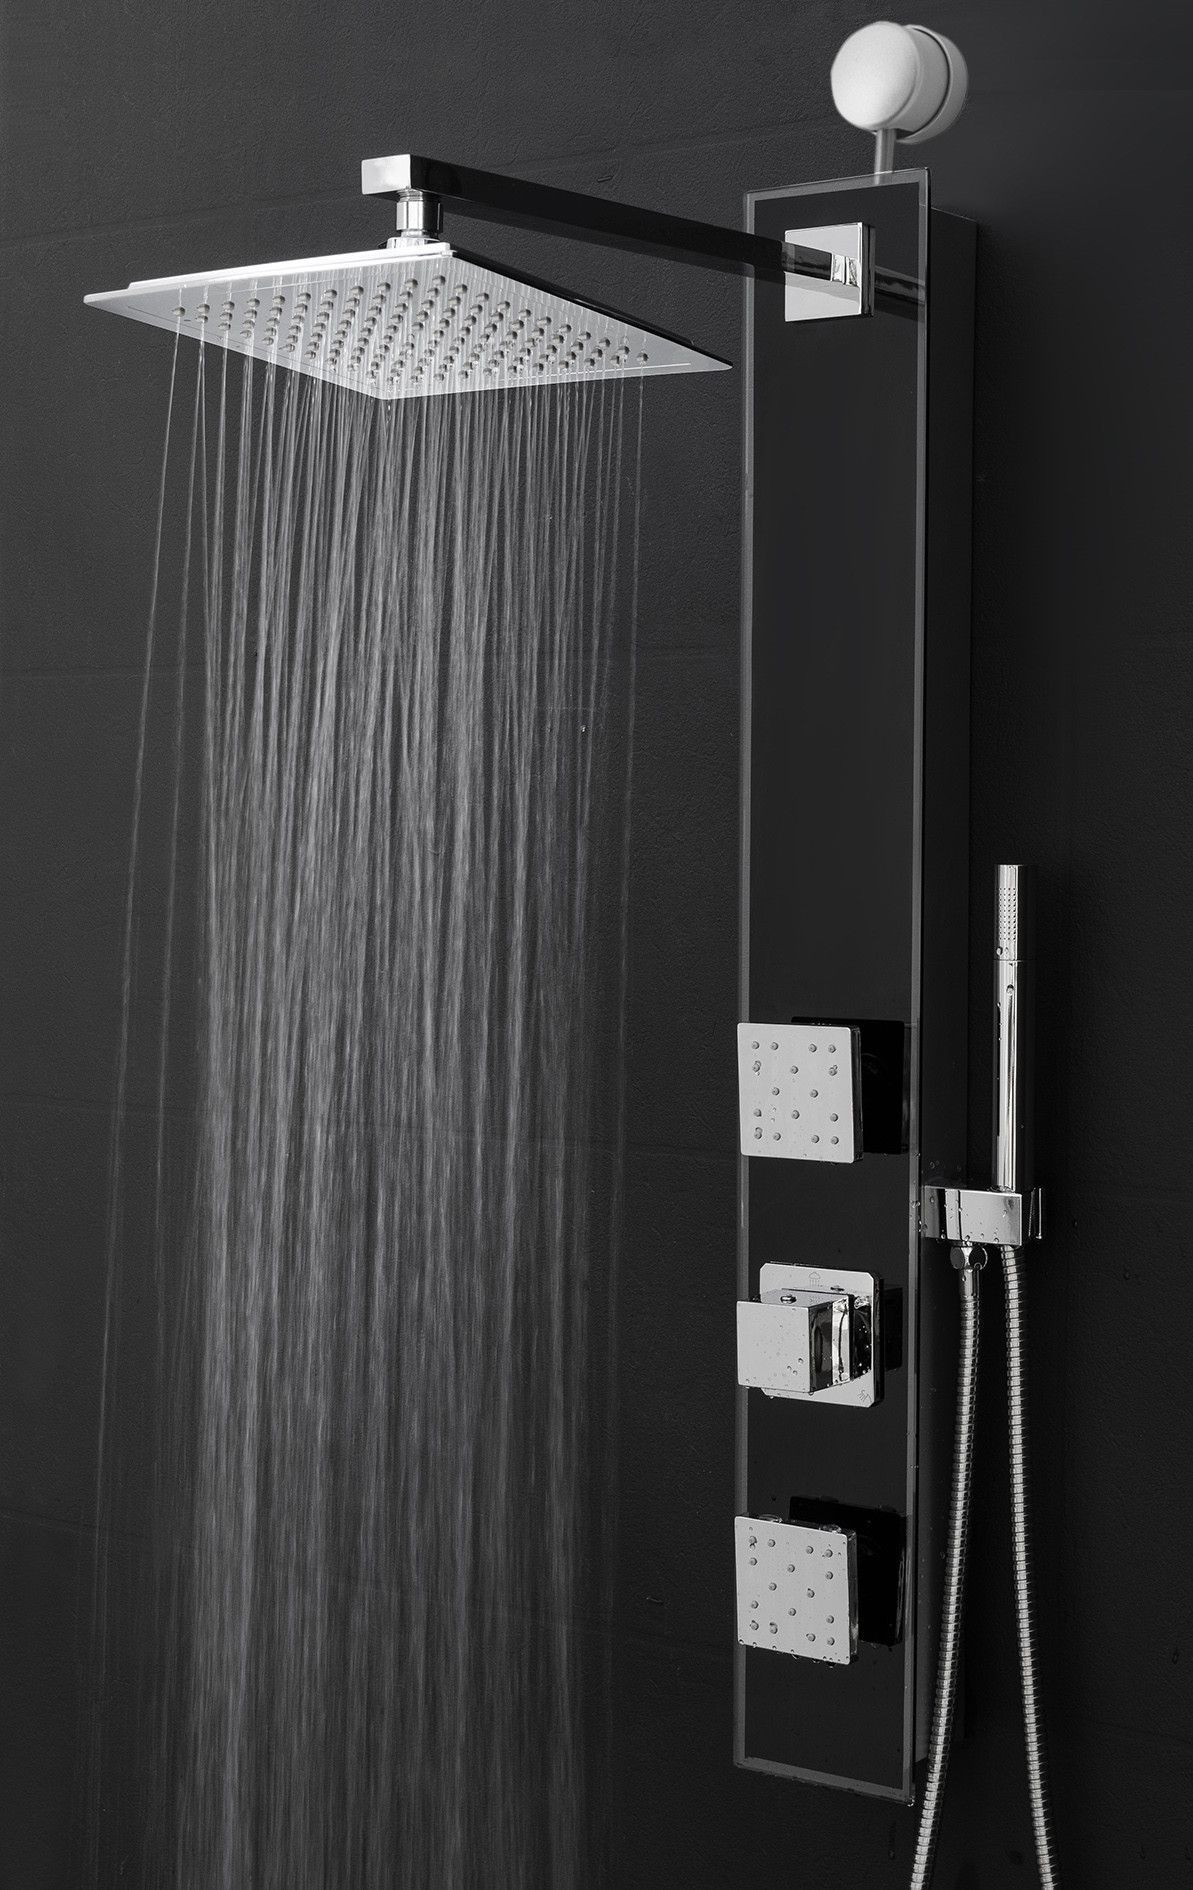 Temperature Control Rain Shower Head Shower Panel - Includes Rough ...